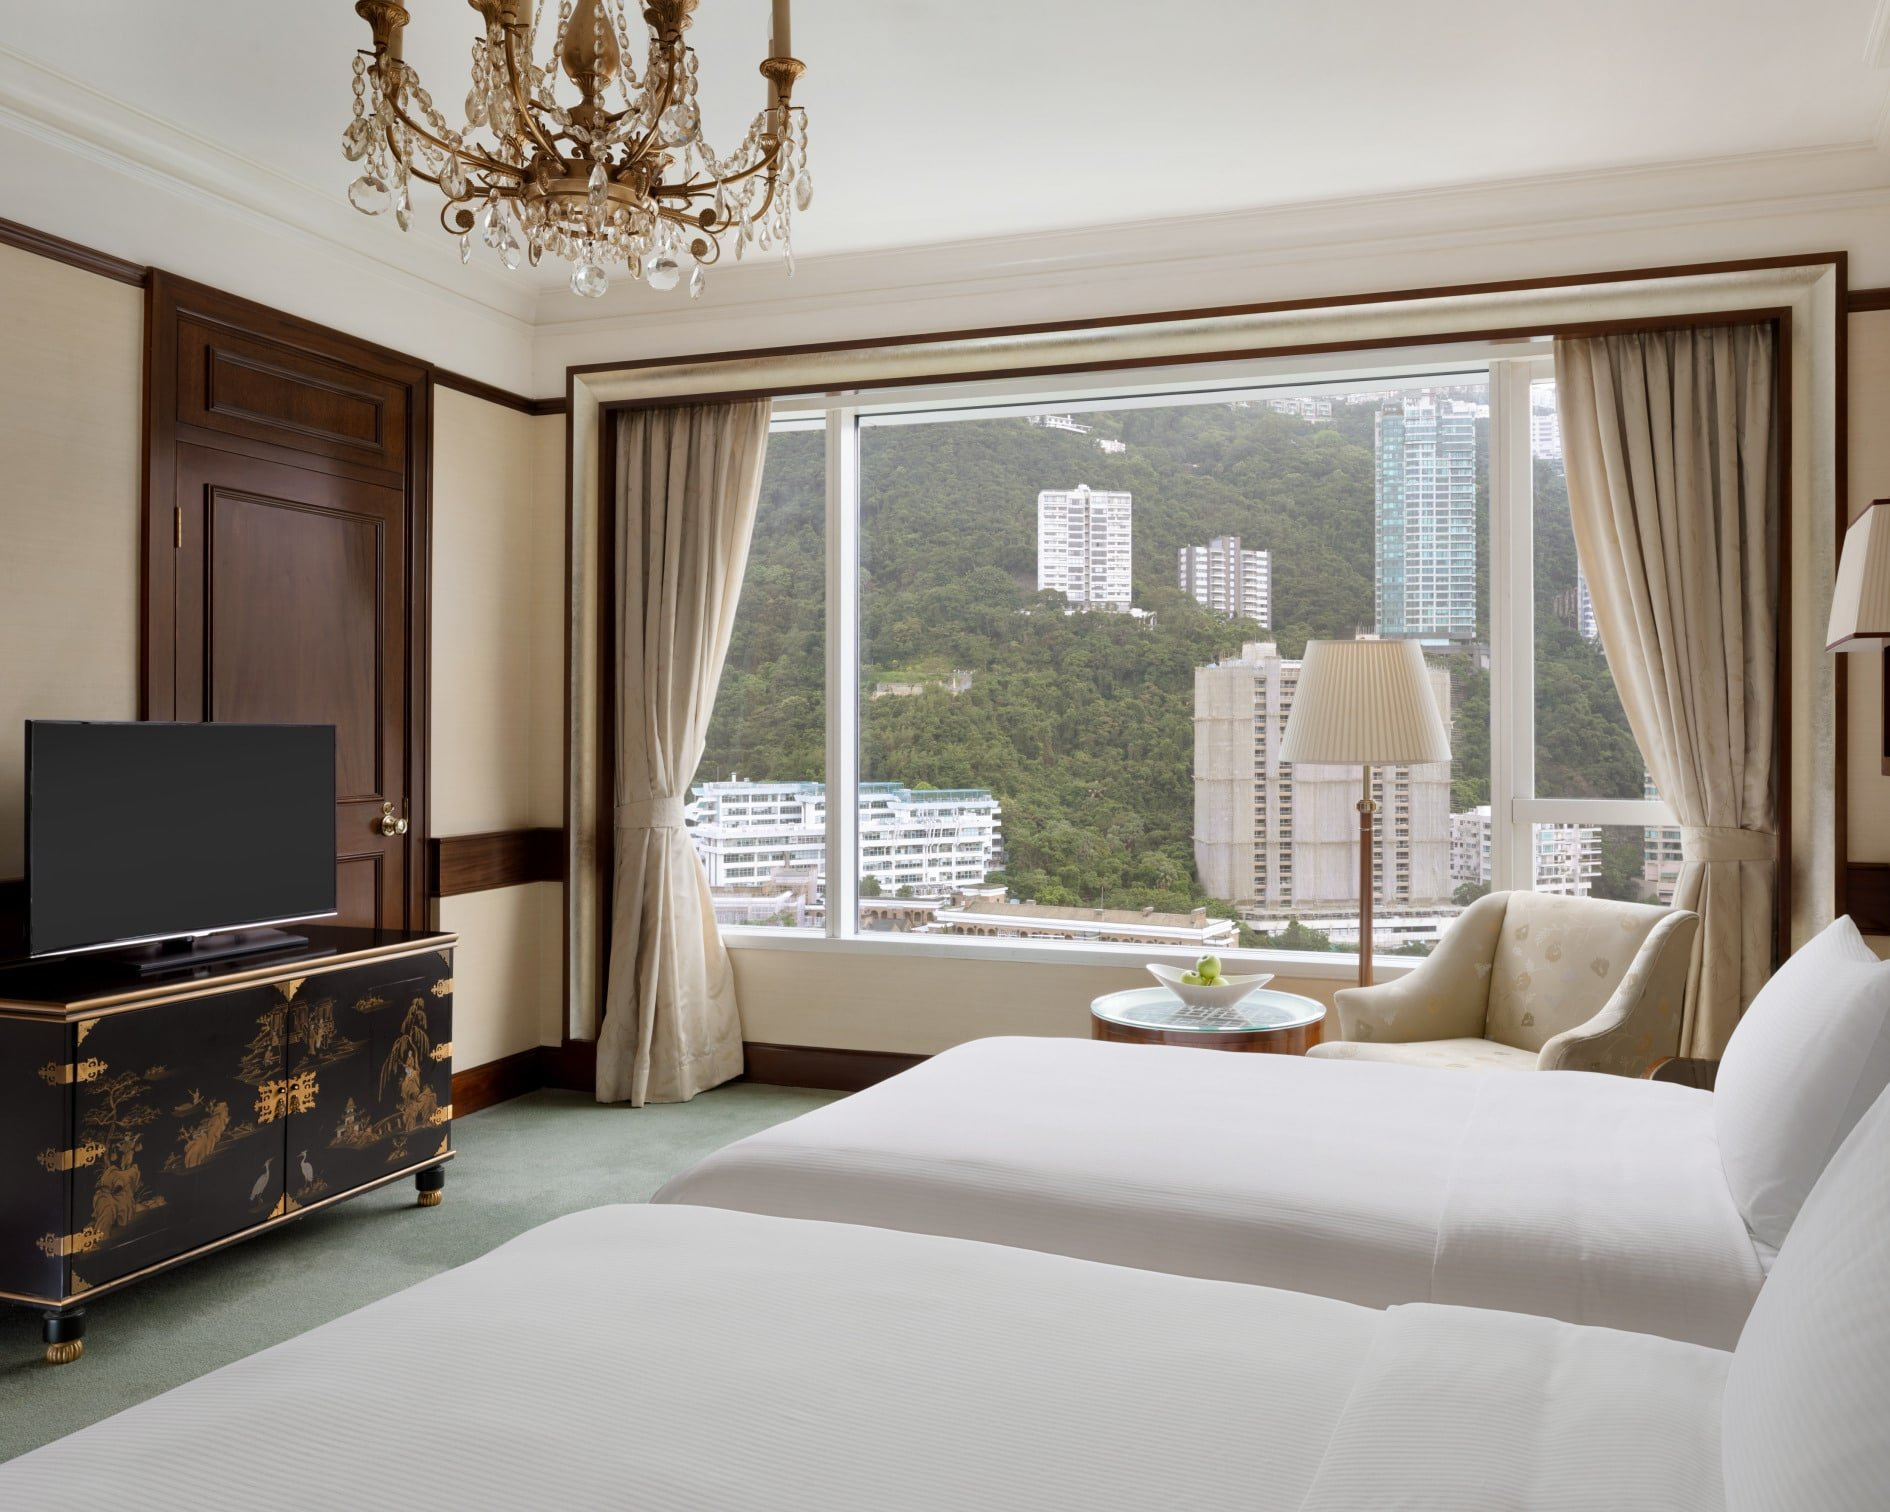 Island Shangri-la Hong Kong Deluxe Peak View Twin Room